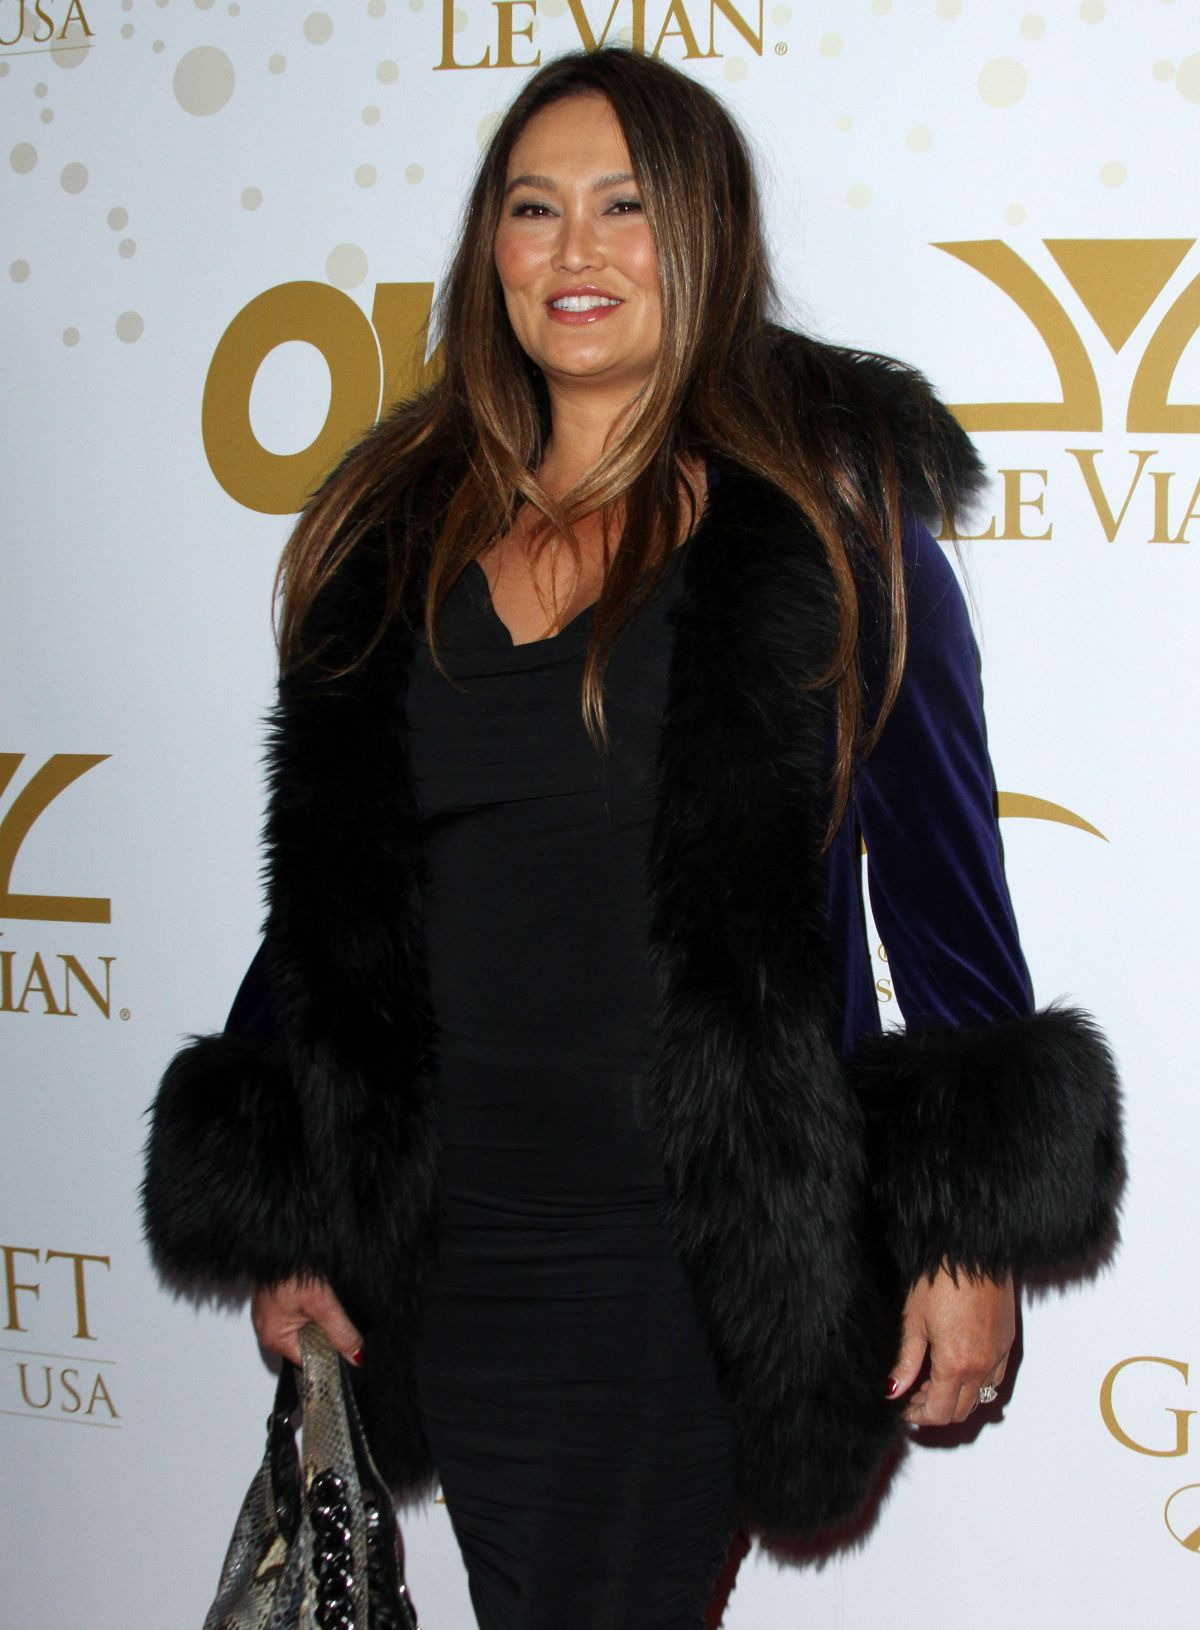 TIA CARRERE at OK! Pre-oscar Party in Los Angeles 02/25/2016